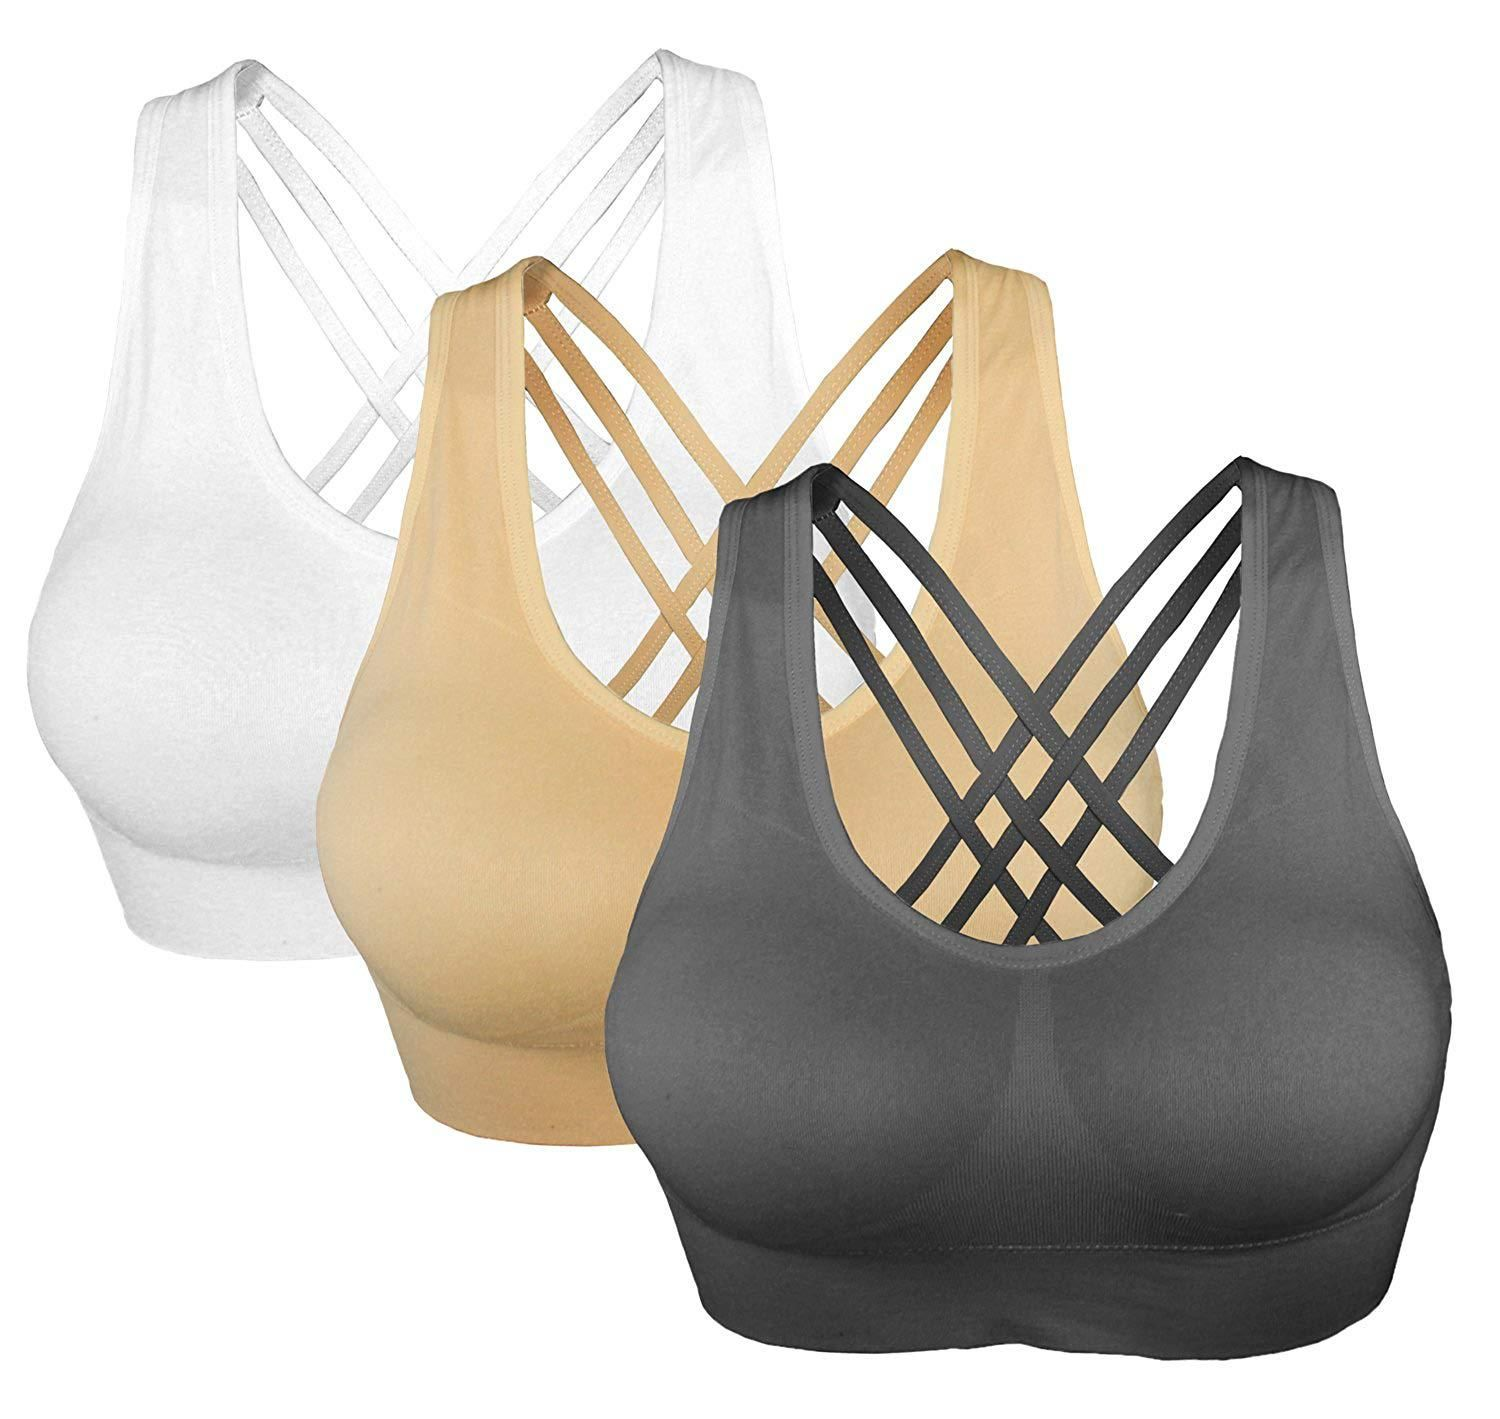 863f59032a97e Cabales Womens 3Pack Lace Cover Sports Bra With Removable Pads at Amazon  Womens Clothing store